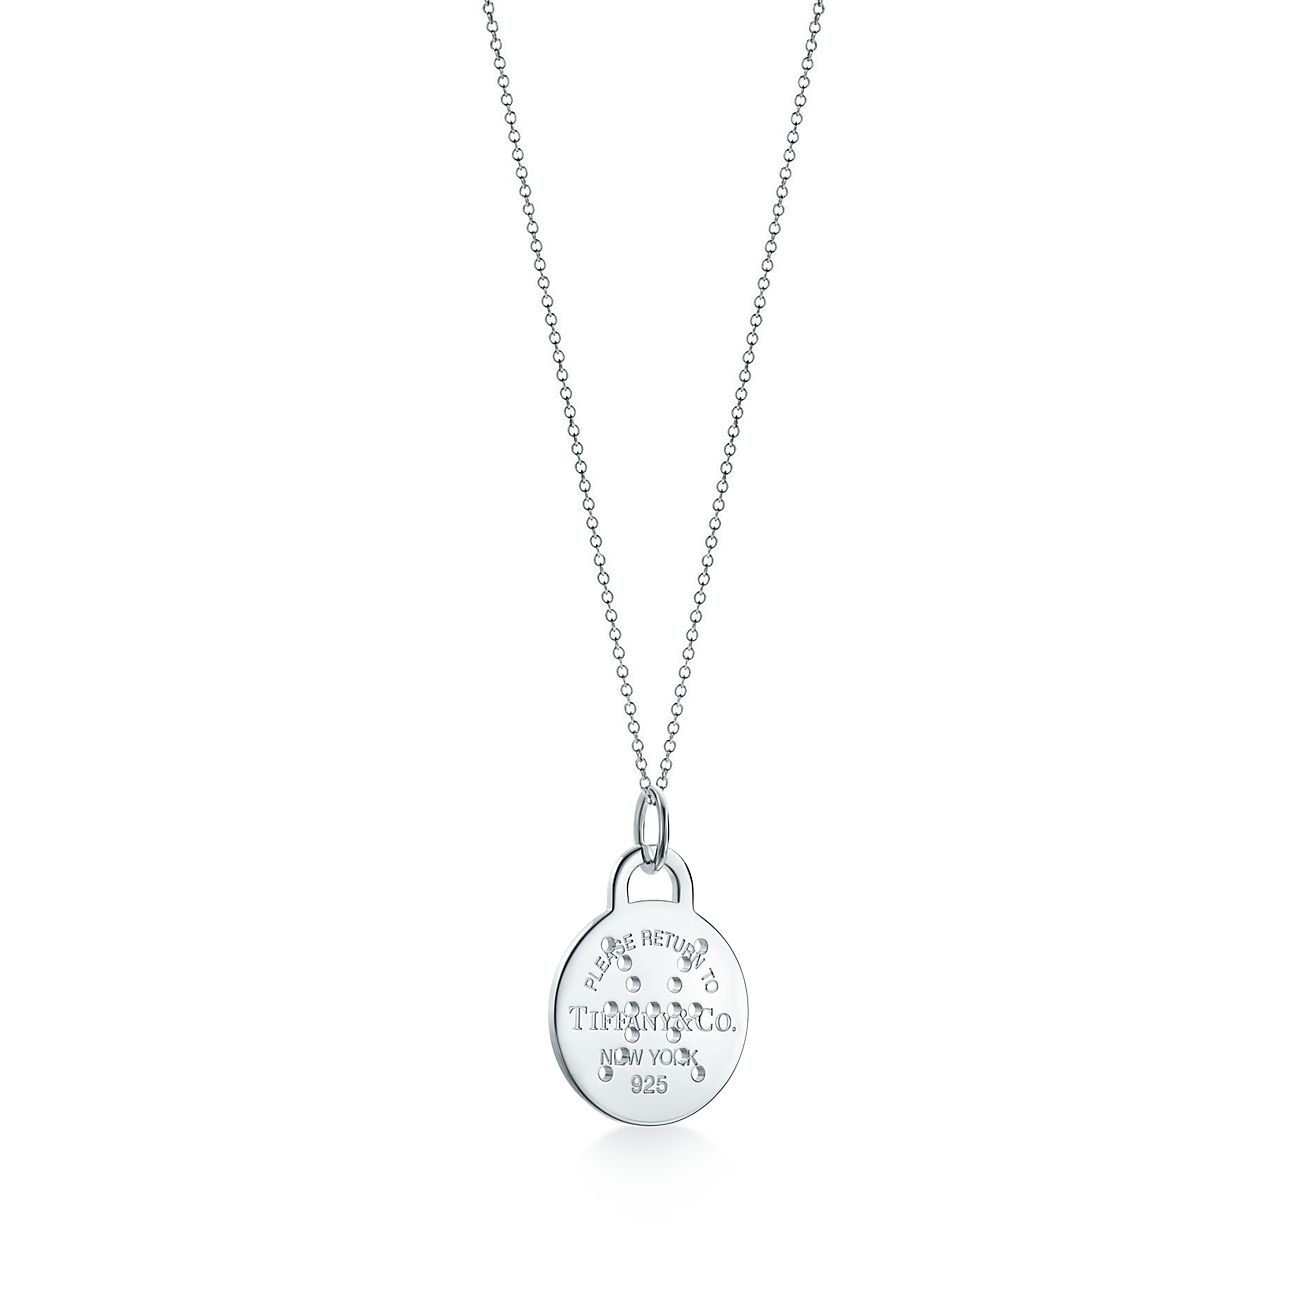 Return to Tiffany Zodiac Virgo round tag charm in sterling silver, large - Size Virgo Tiffany & Co.